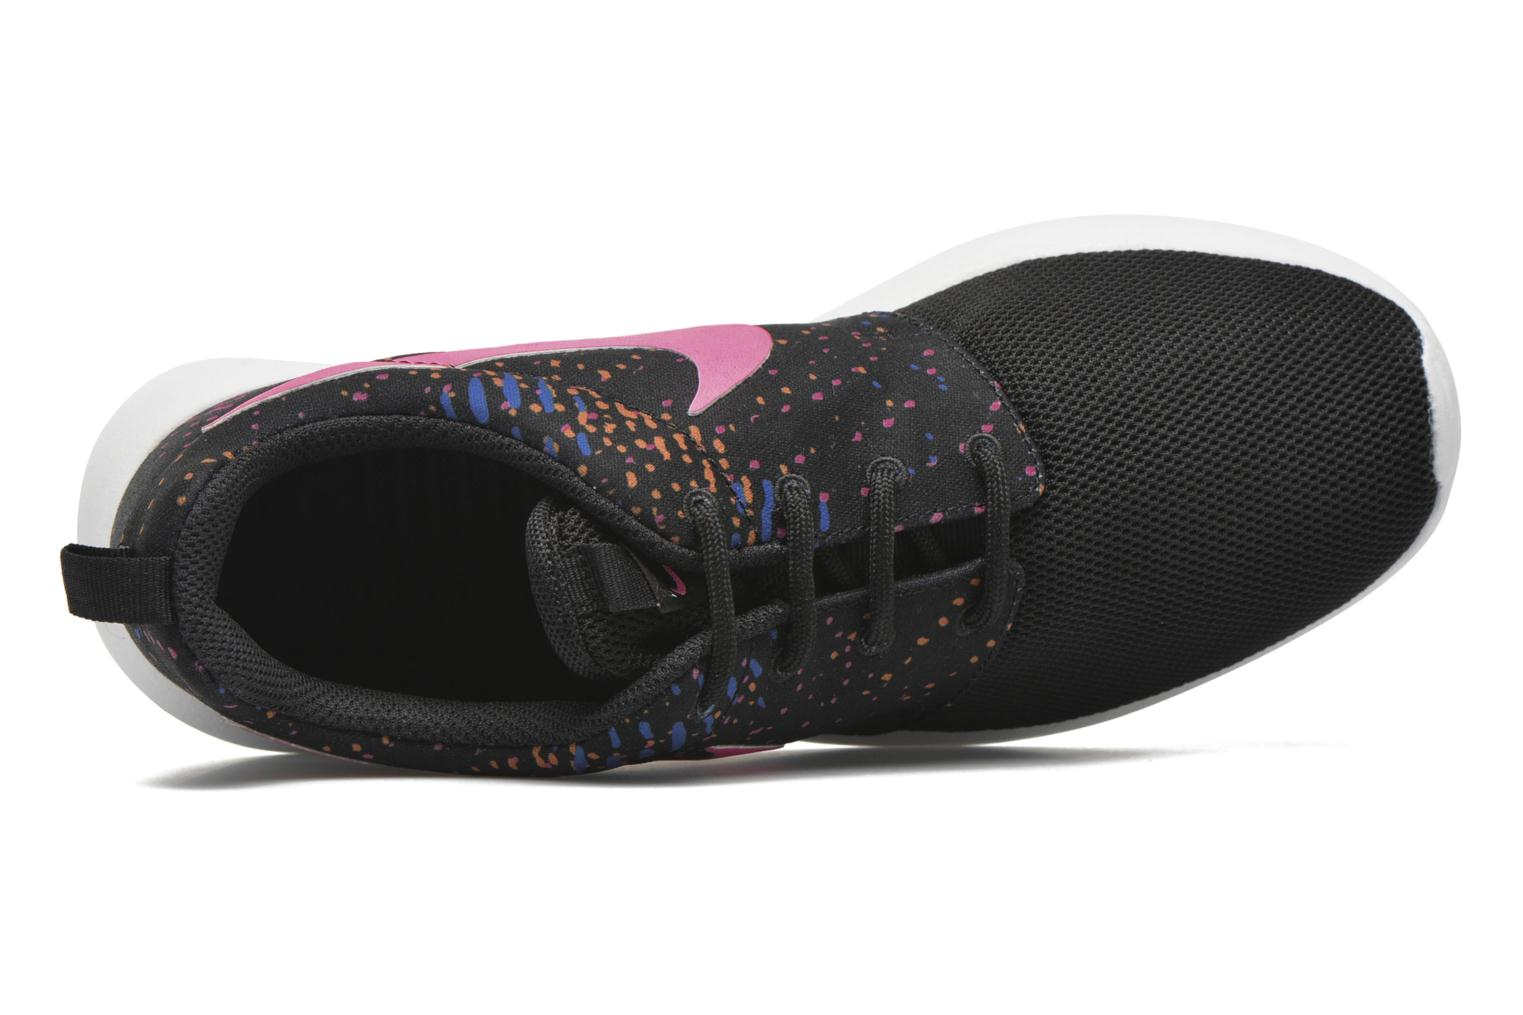 W Nike Roshe One Print Black/Digital Pink-Black-Snst